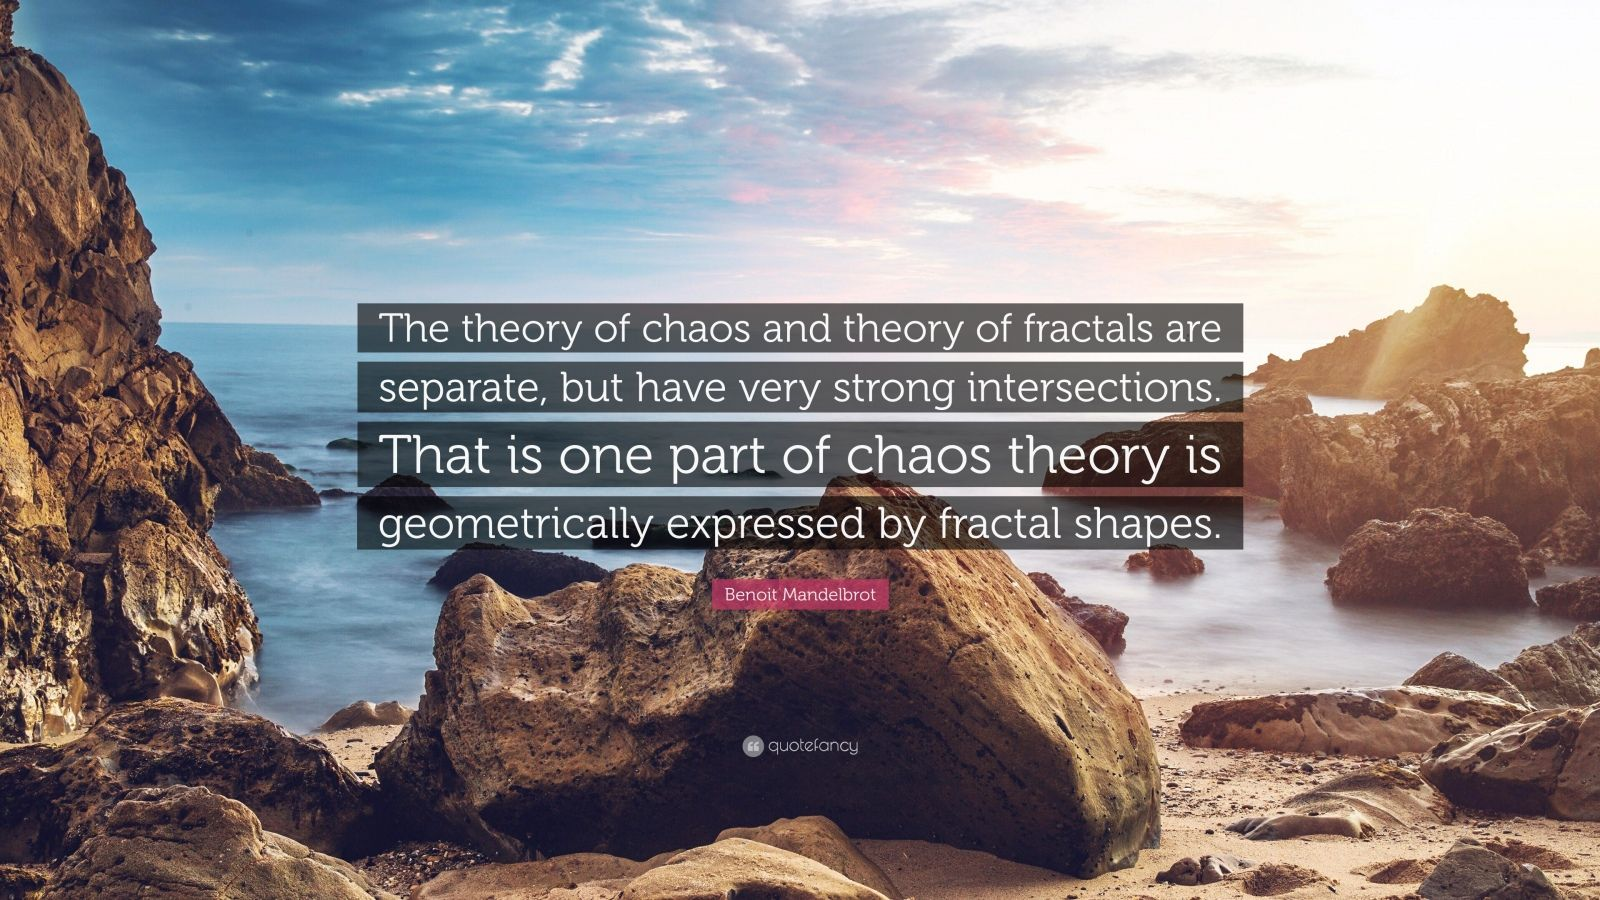 """Benoit Mandelbrot Quote: """"The theory of chaos and theory of fractals are separate, but have very strong intersections. That is one part of chaos theory is geometrically expressed by fractal shapes."""""""